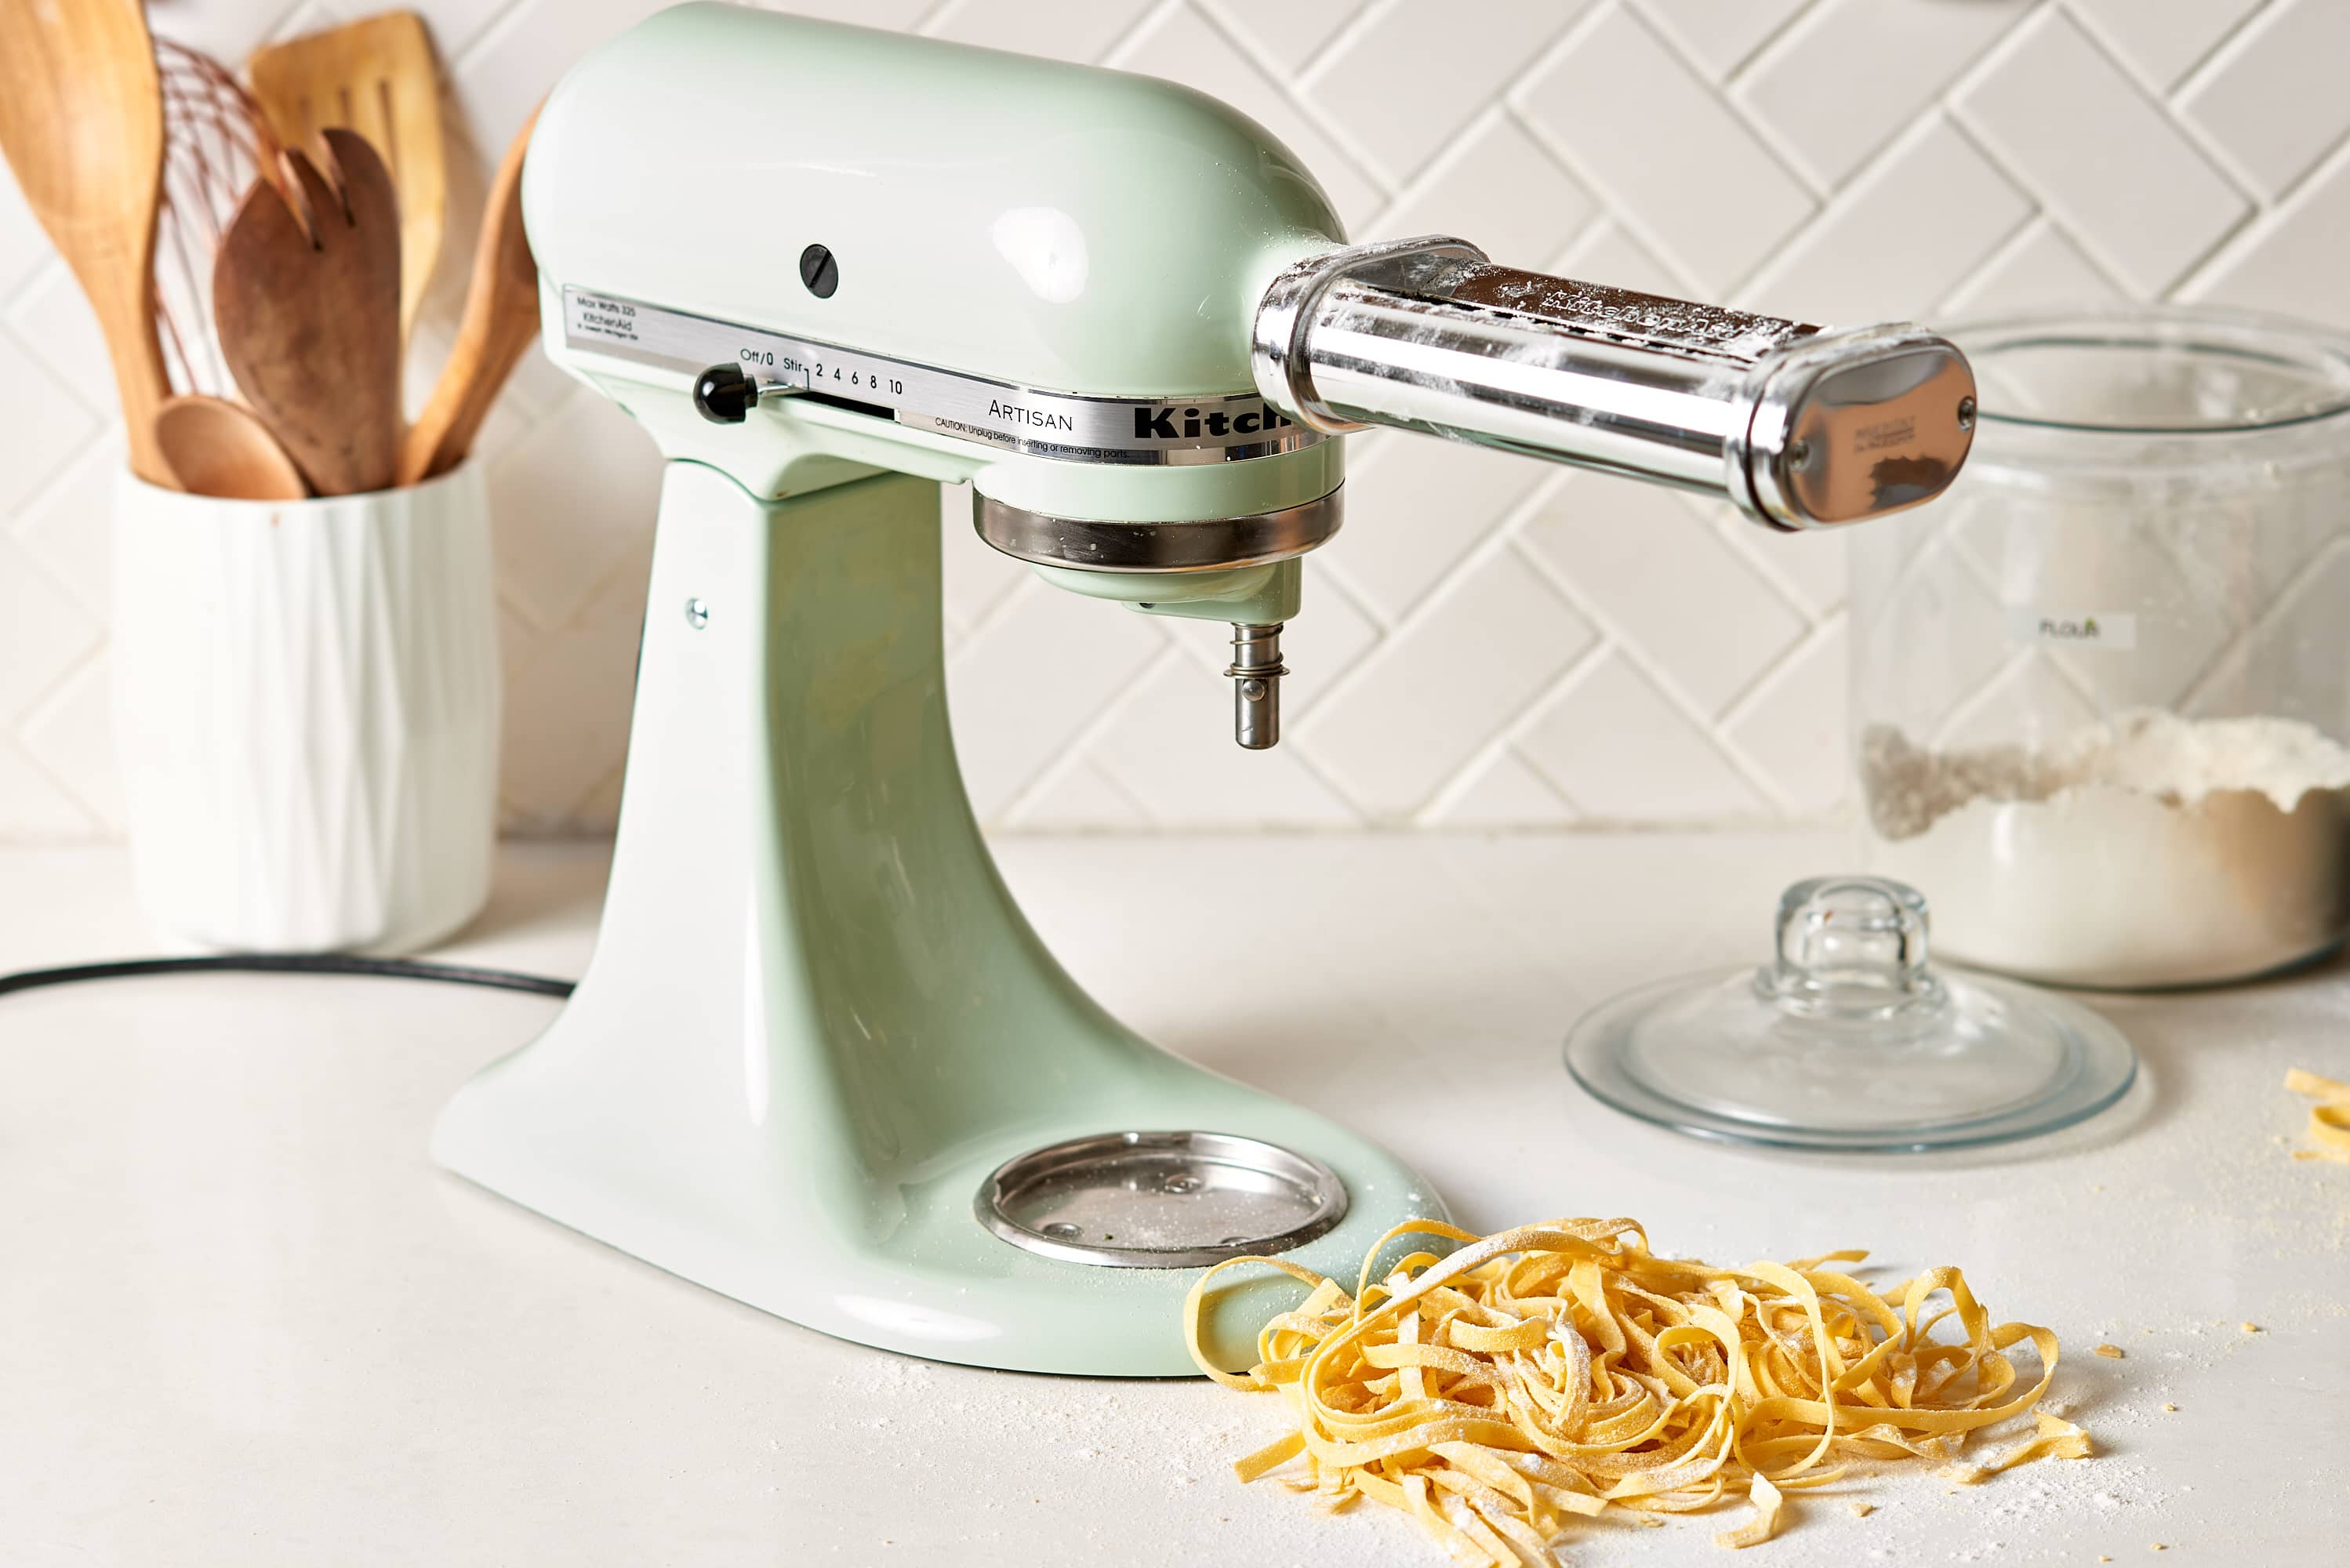 6 Things Every Kitchenaid Stand Mixer Owner Should Put On Their